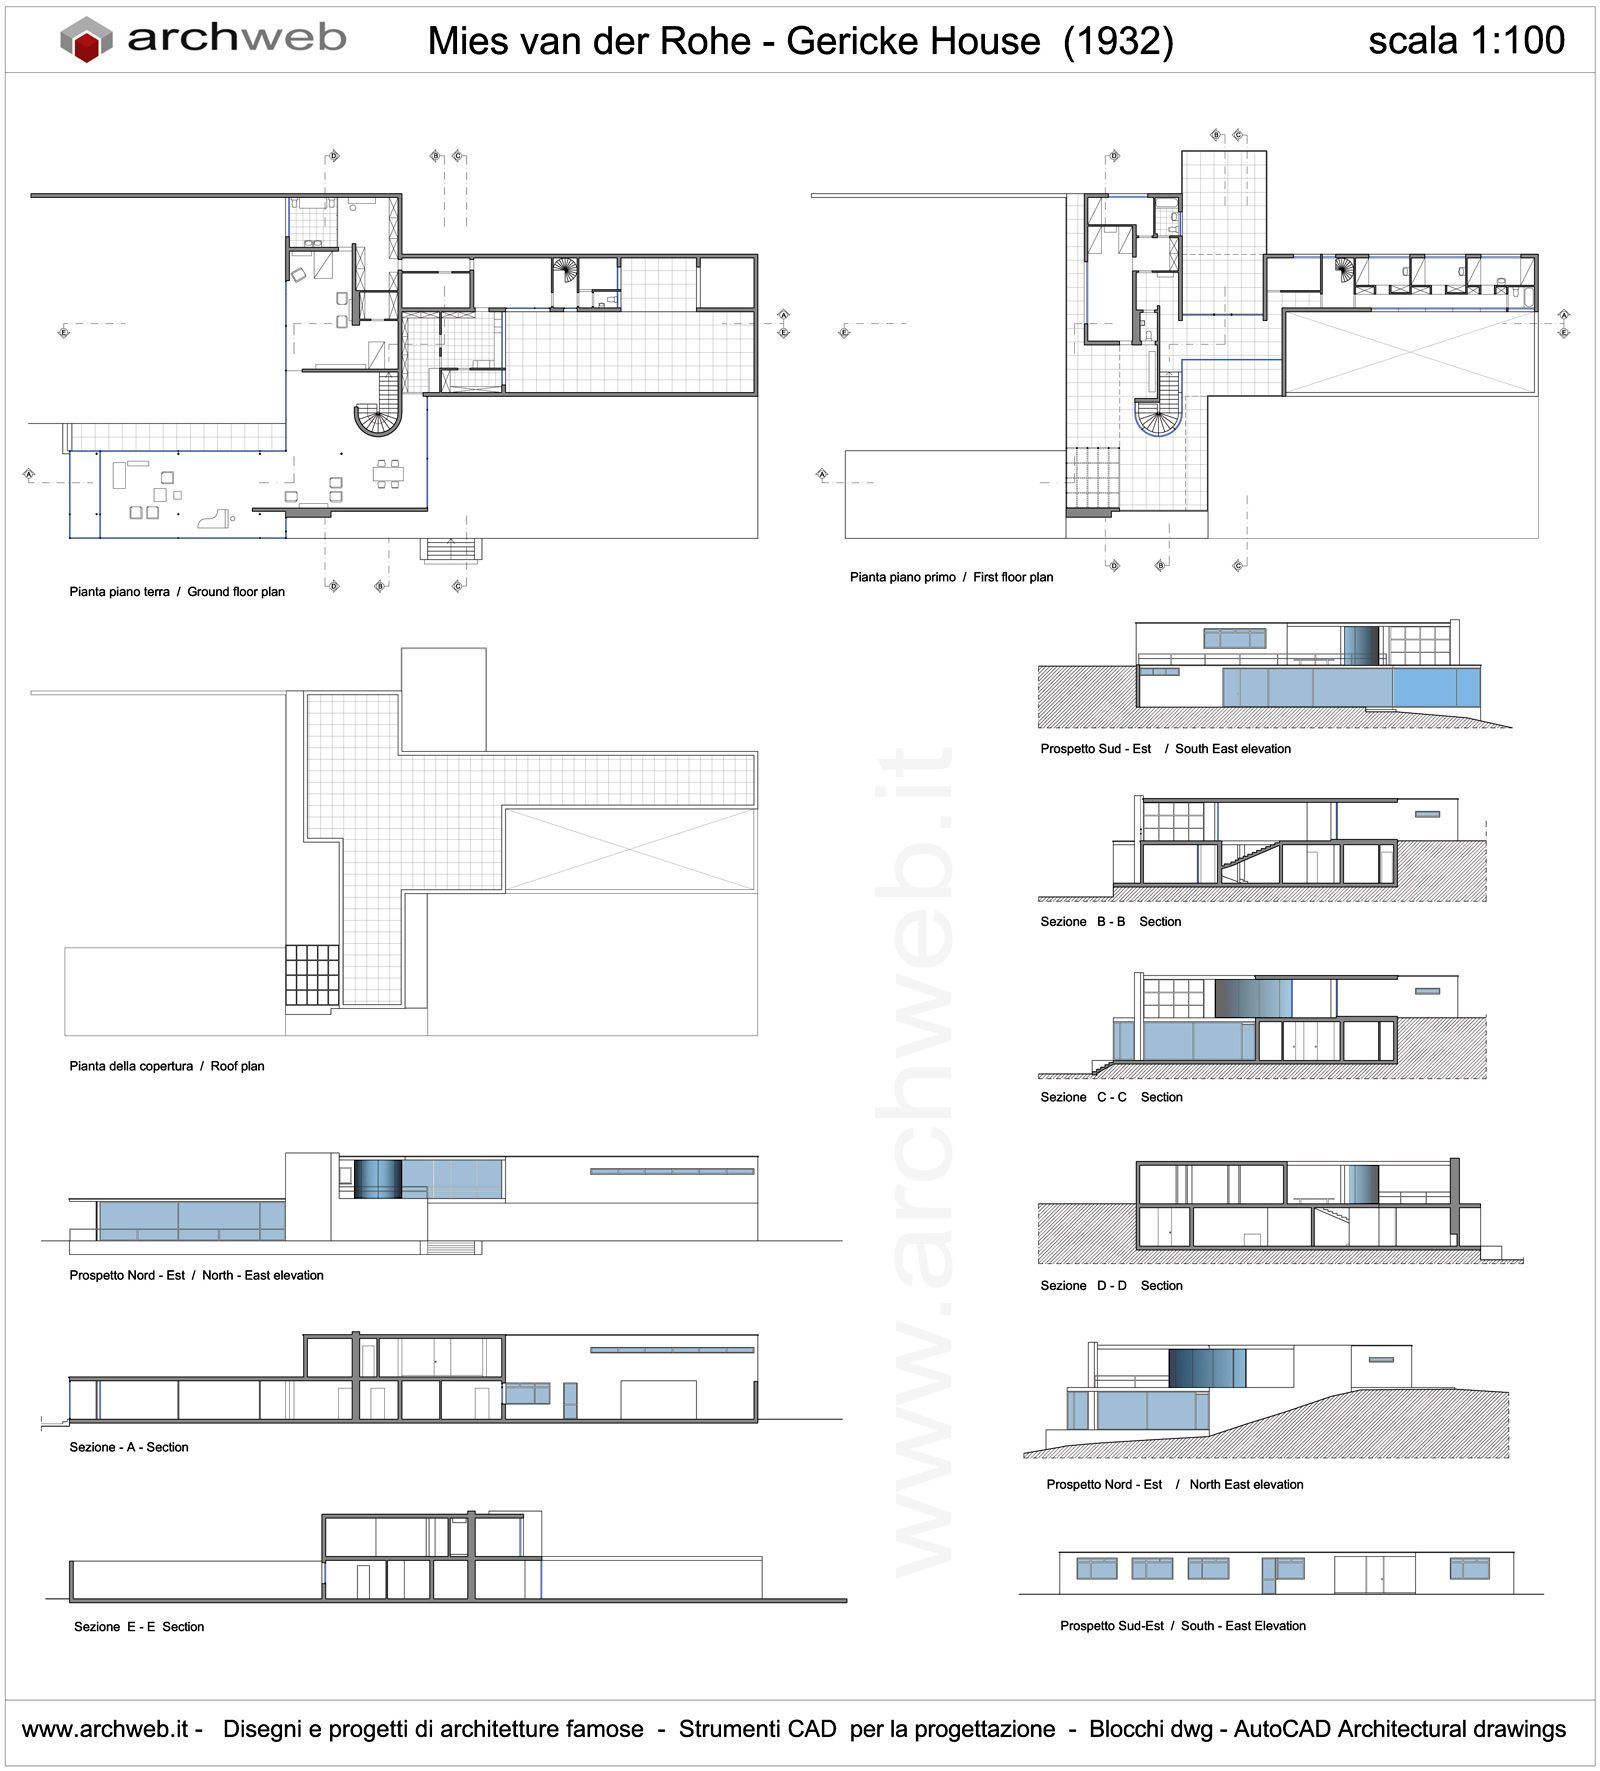 Mies van der rohe gericke house drawings house plans for Archweb piante